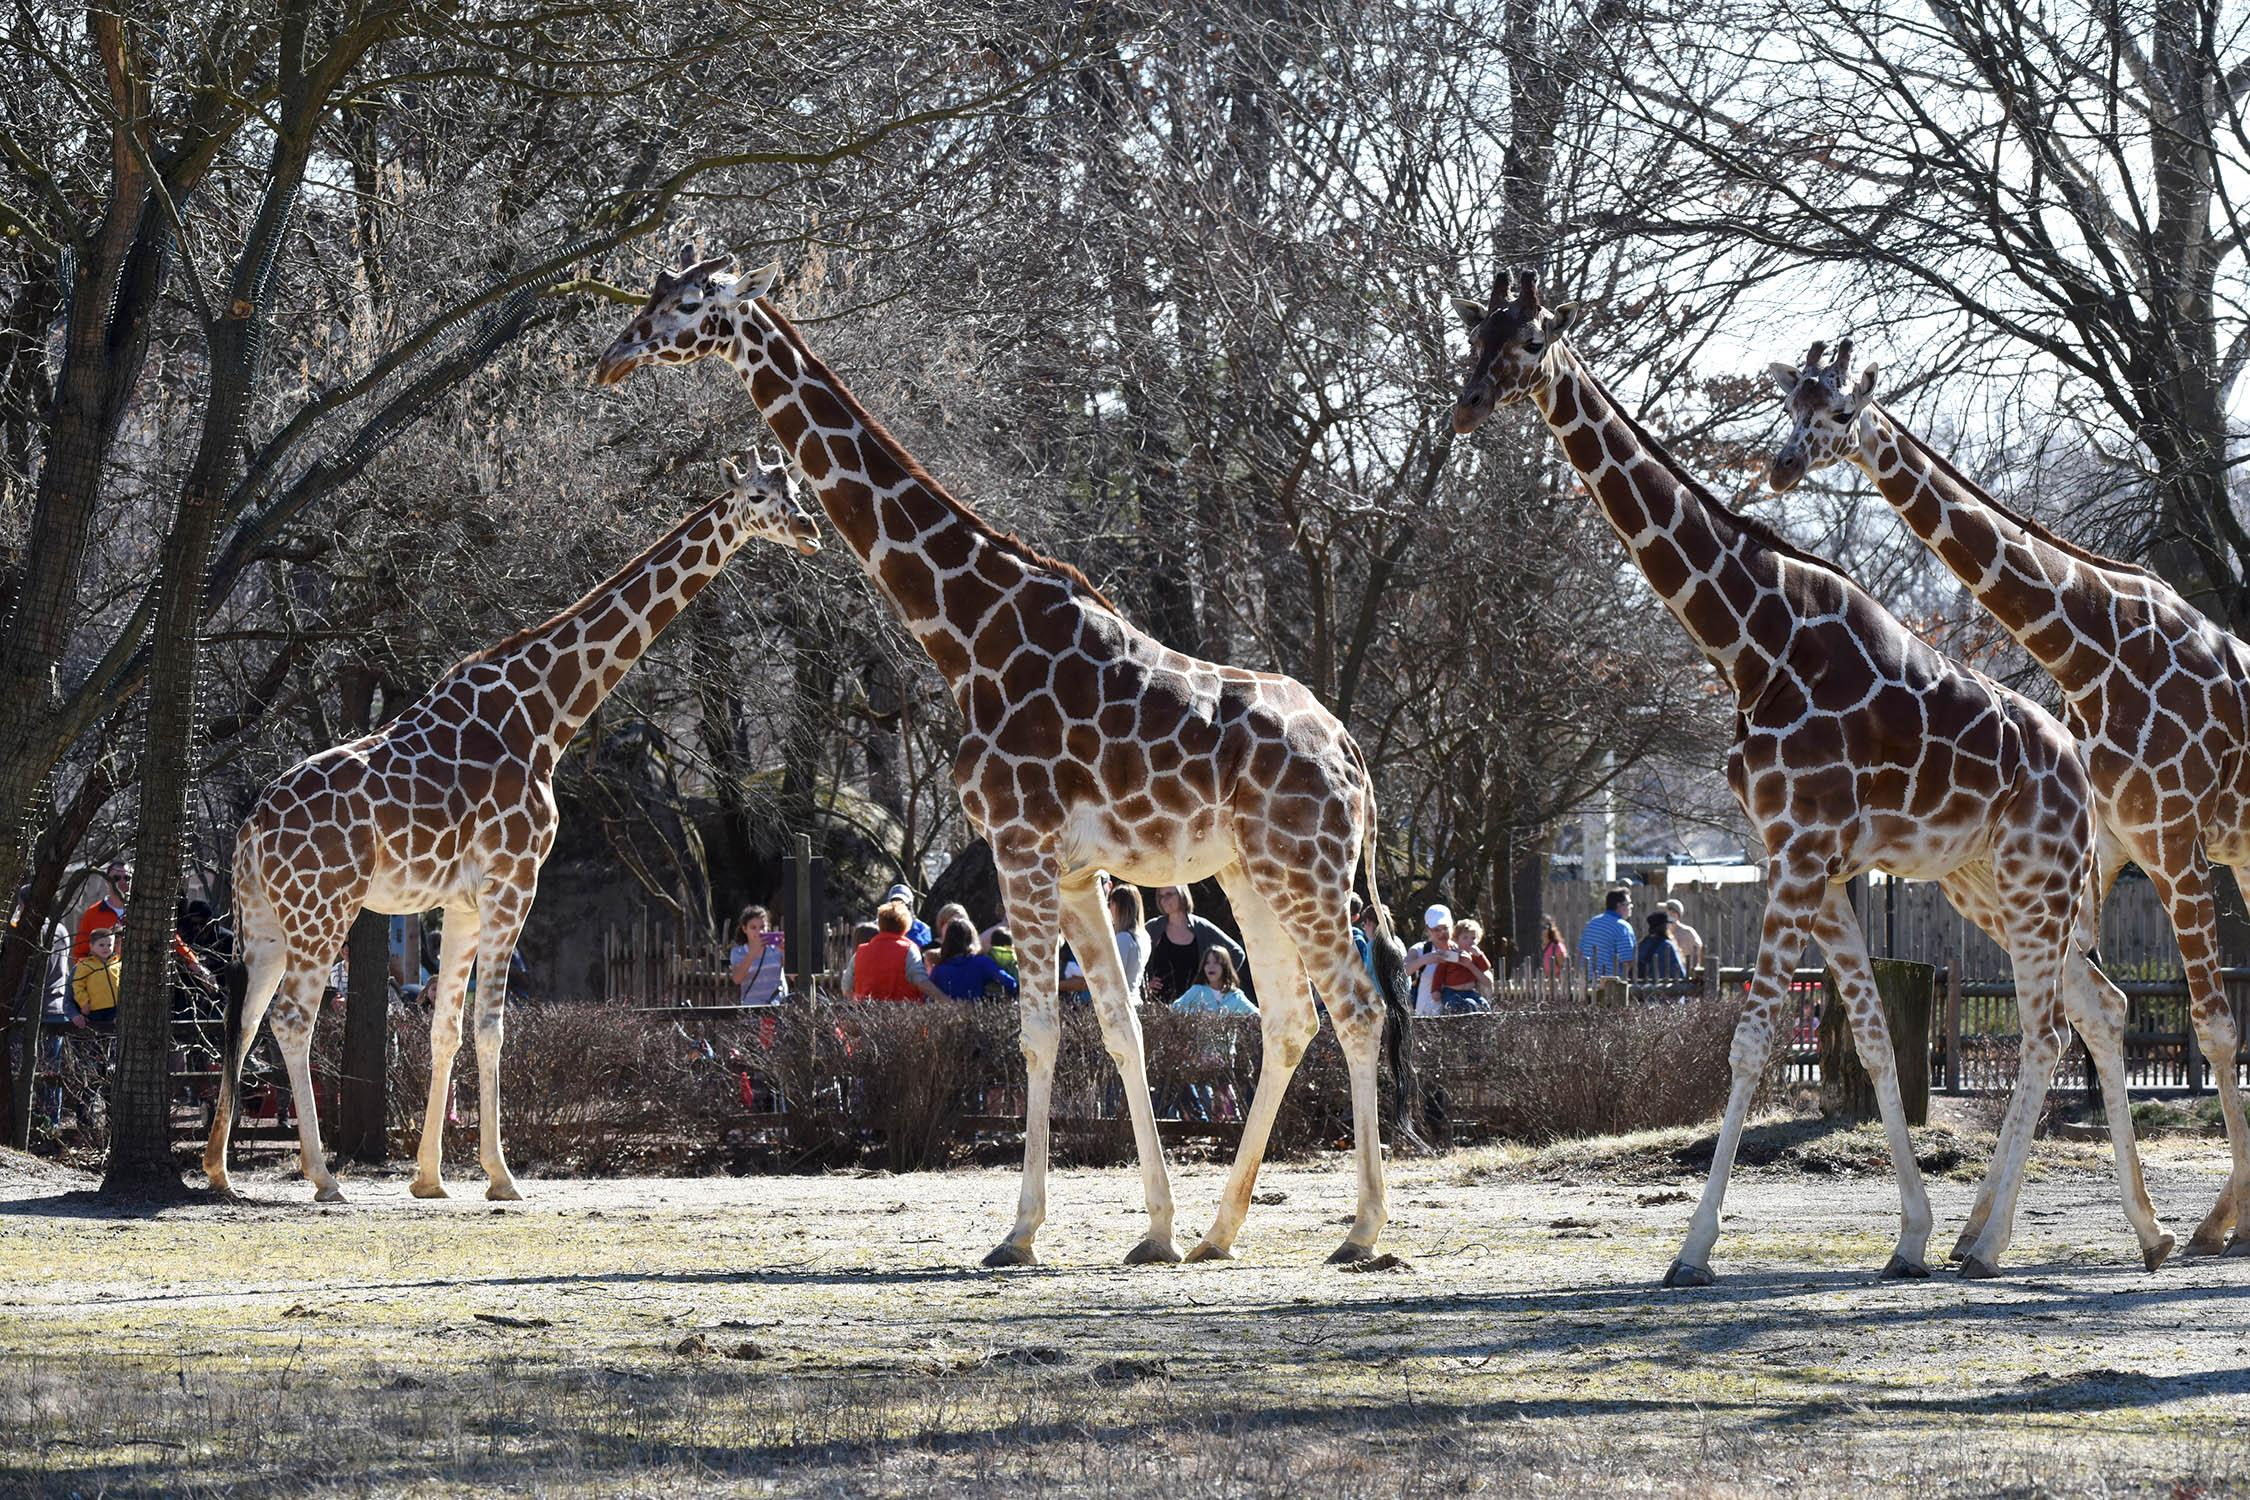 Brookfield Zoo's four giraffes: Mithra, 26; Jasari, 11; Arnieta, 10; and Potoka, 3. (Courtesy of Brookfield Zoo)